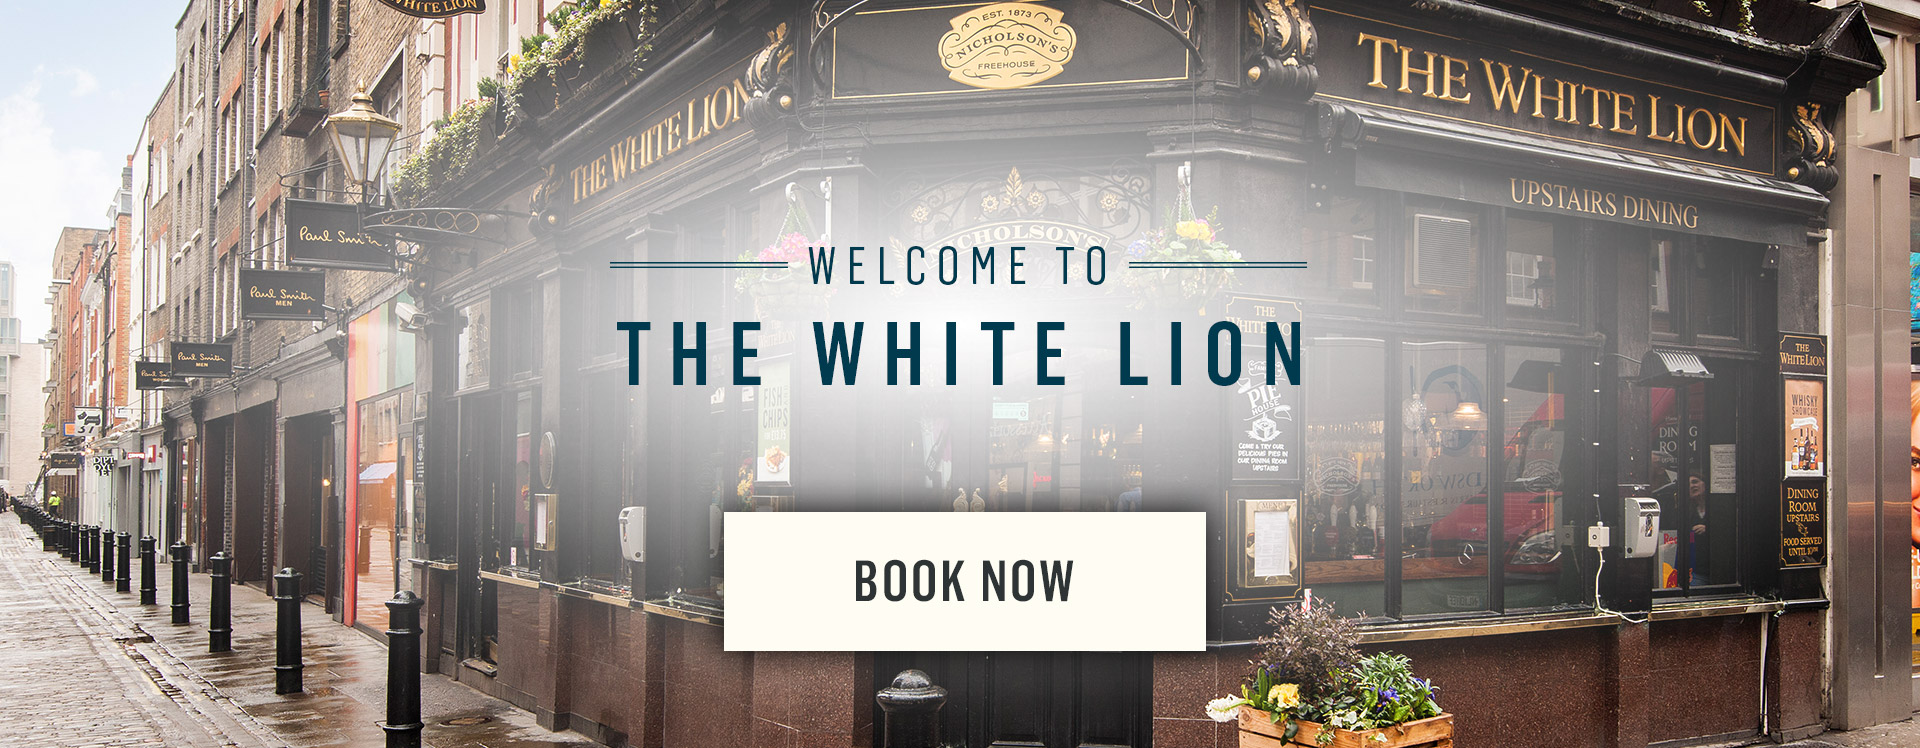 Welcome to The White Lion - Book Now